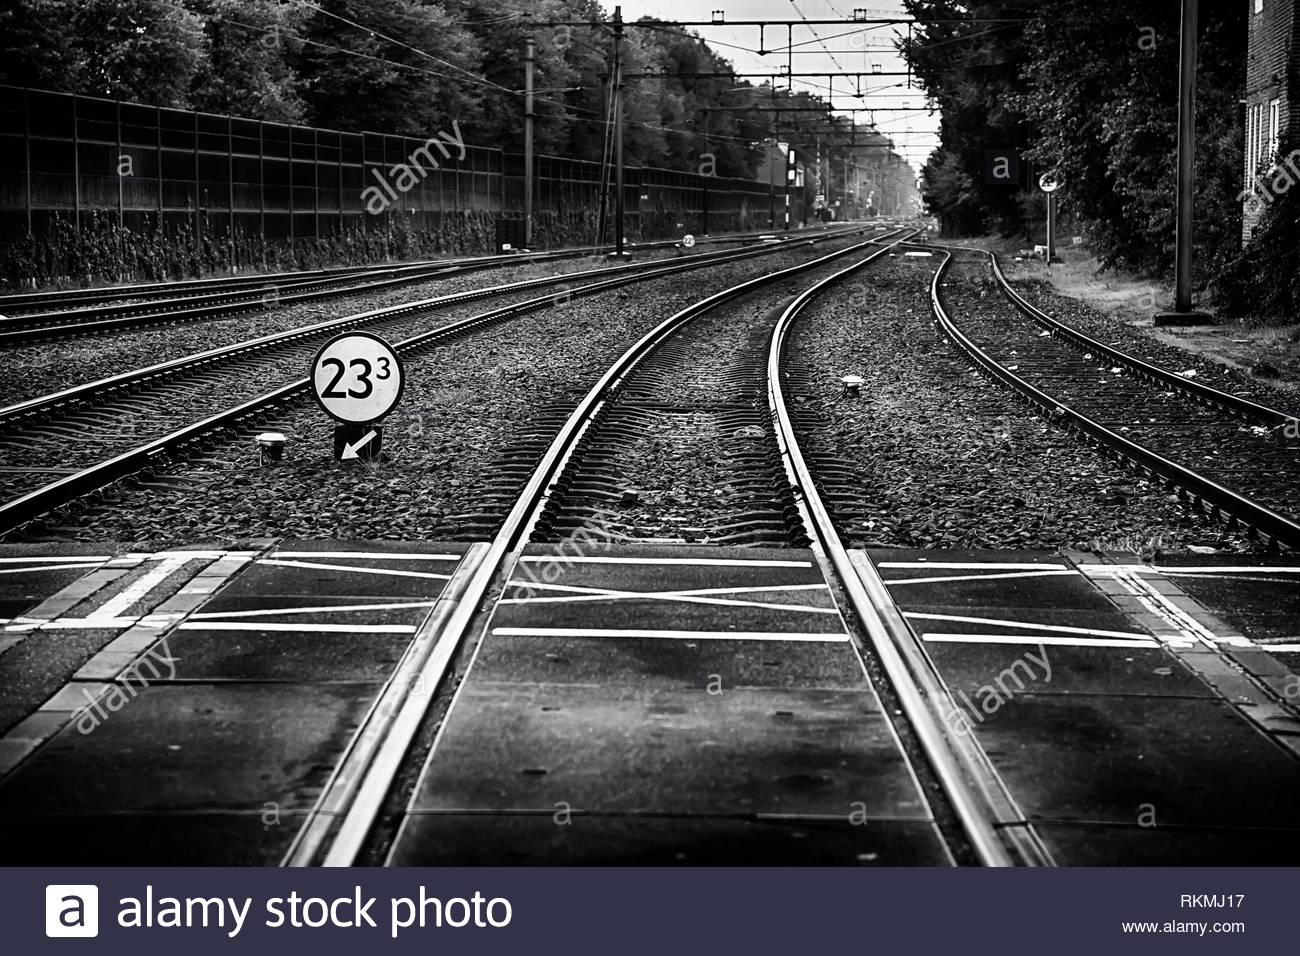 Train tracks in a station, transport detail by rails, trip. - Stock Image